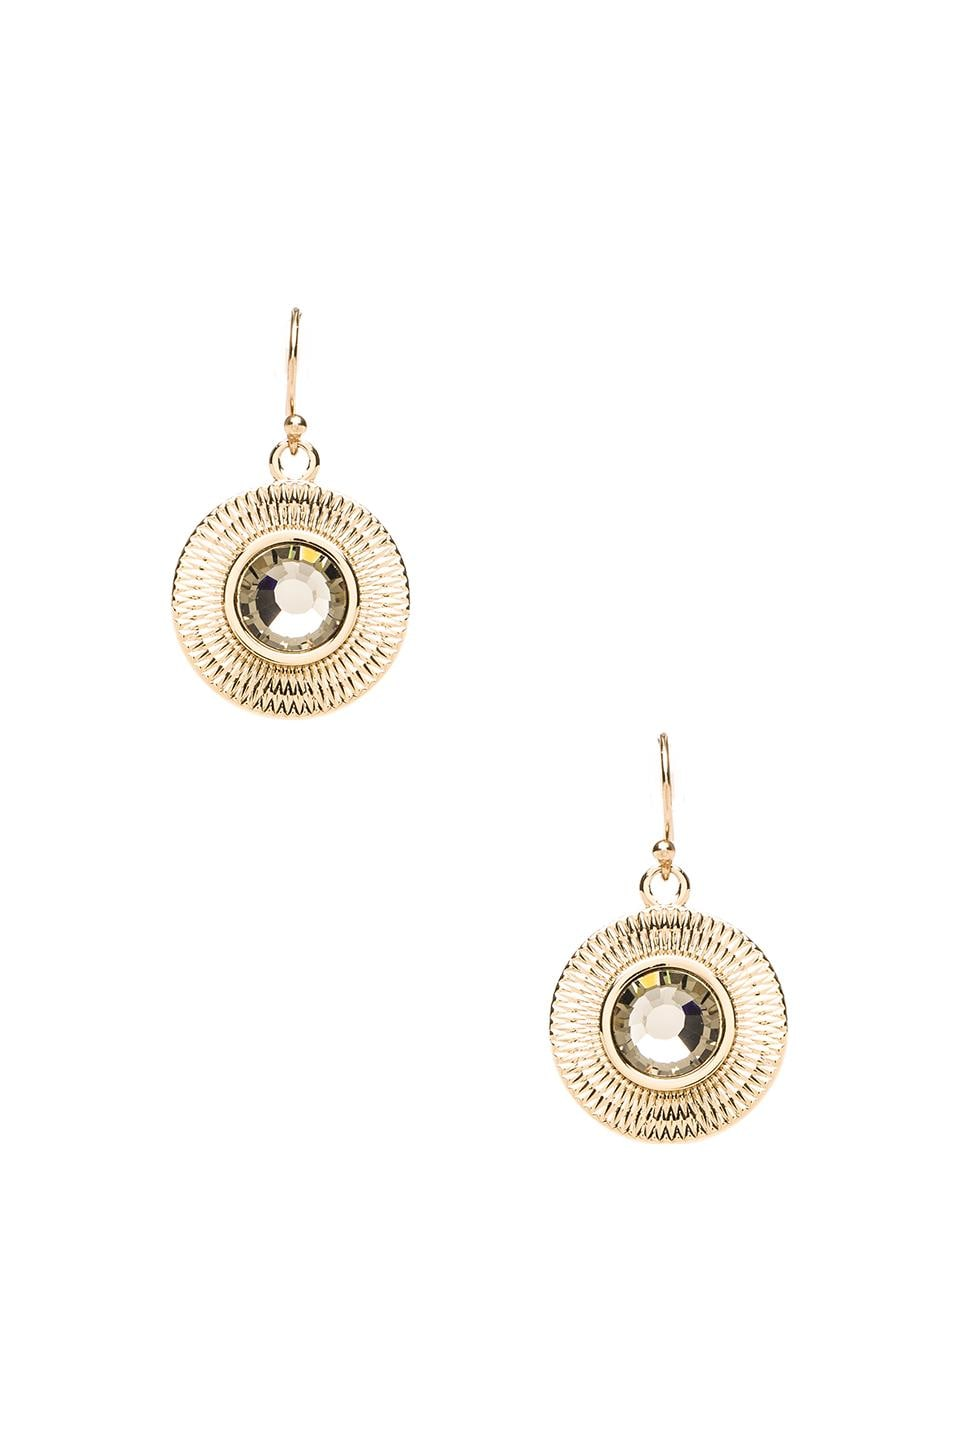 Trina Turk Sunburst Earrings in Gold